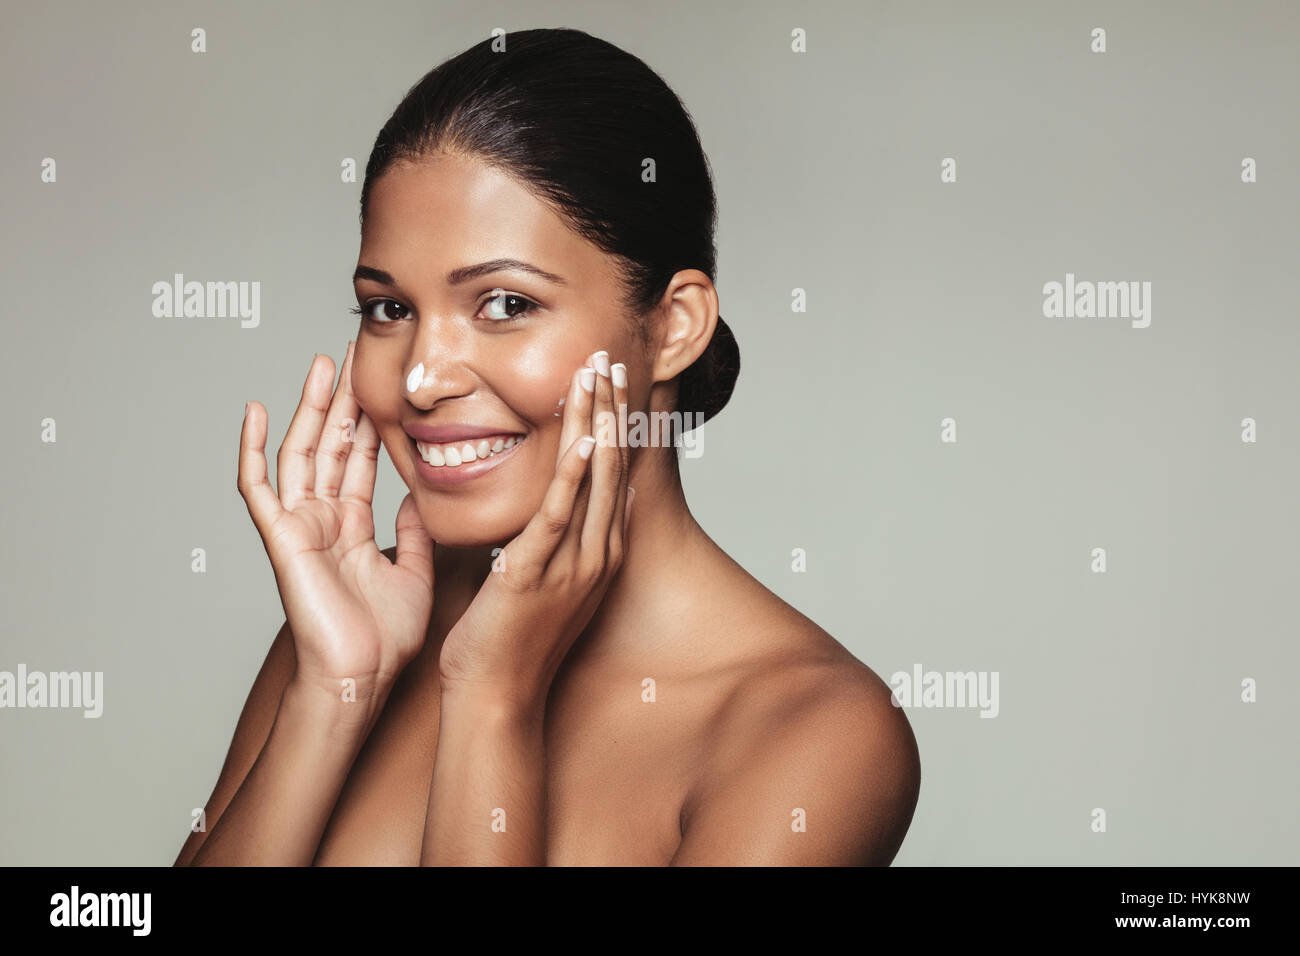 Close up portrait of pretty young woman applying cream to her face. Smiling female model with healthy skin applying - Stock Image